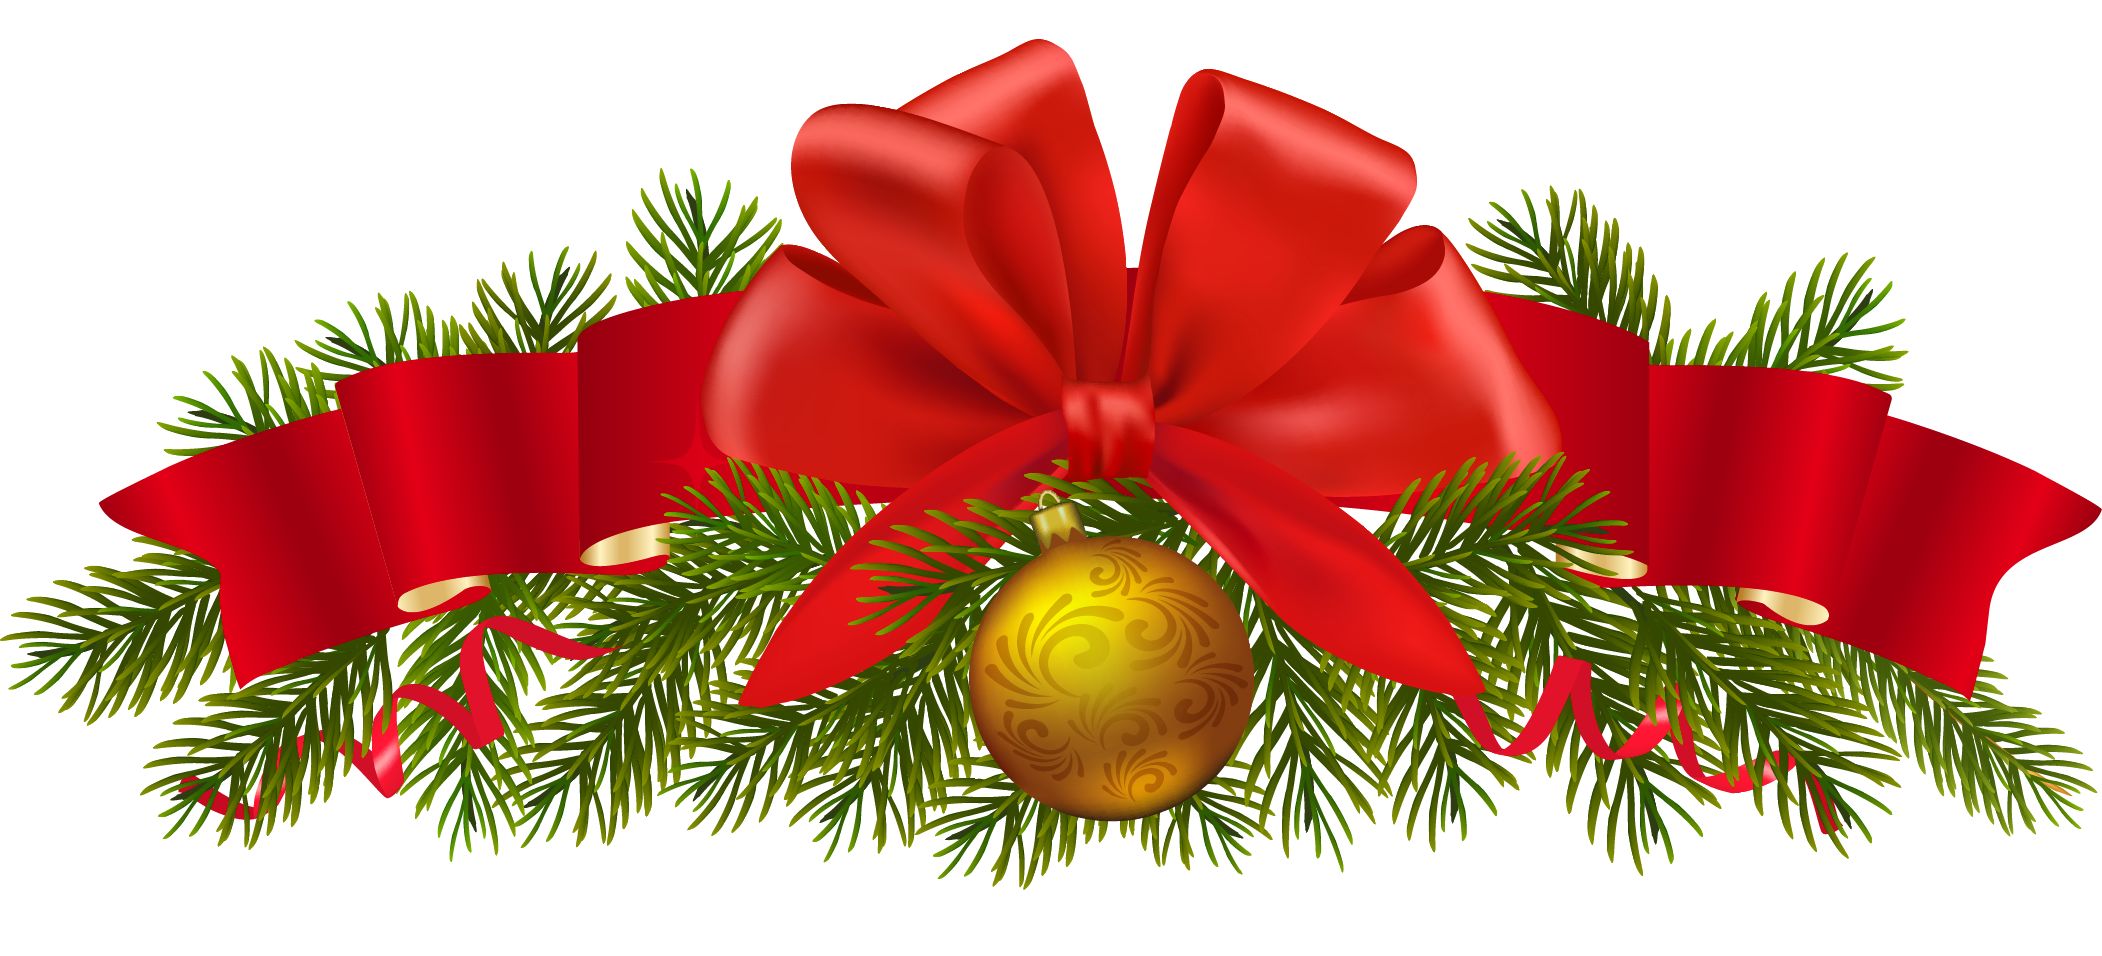 Christmas decorations png. Images download decoration